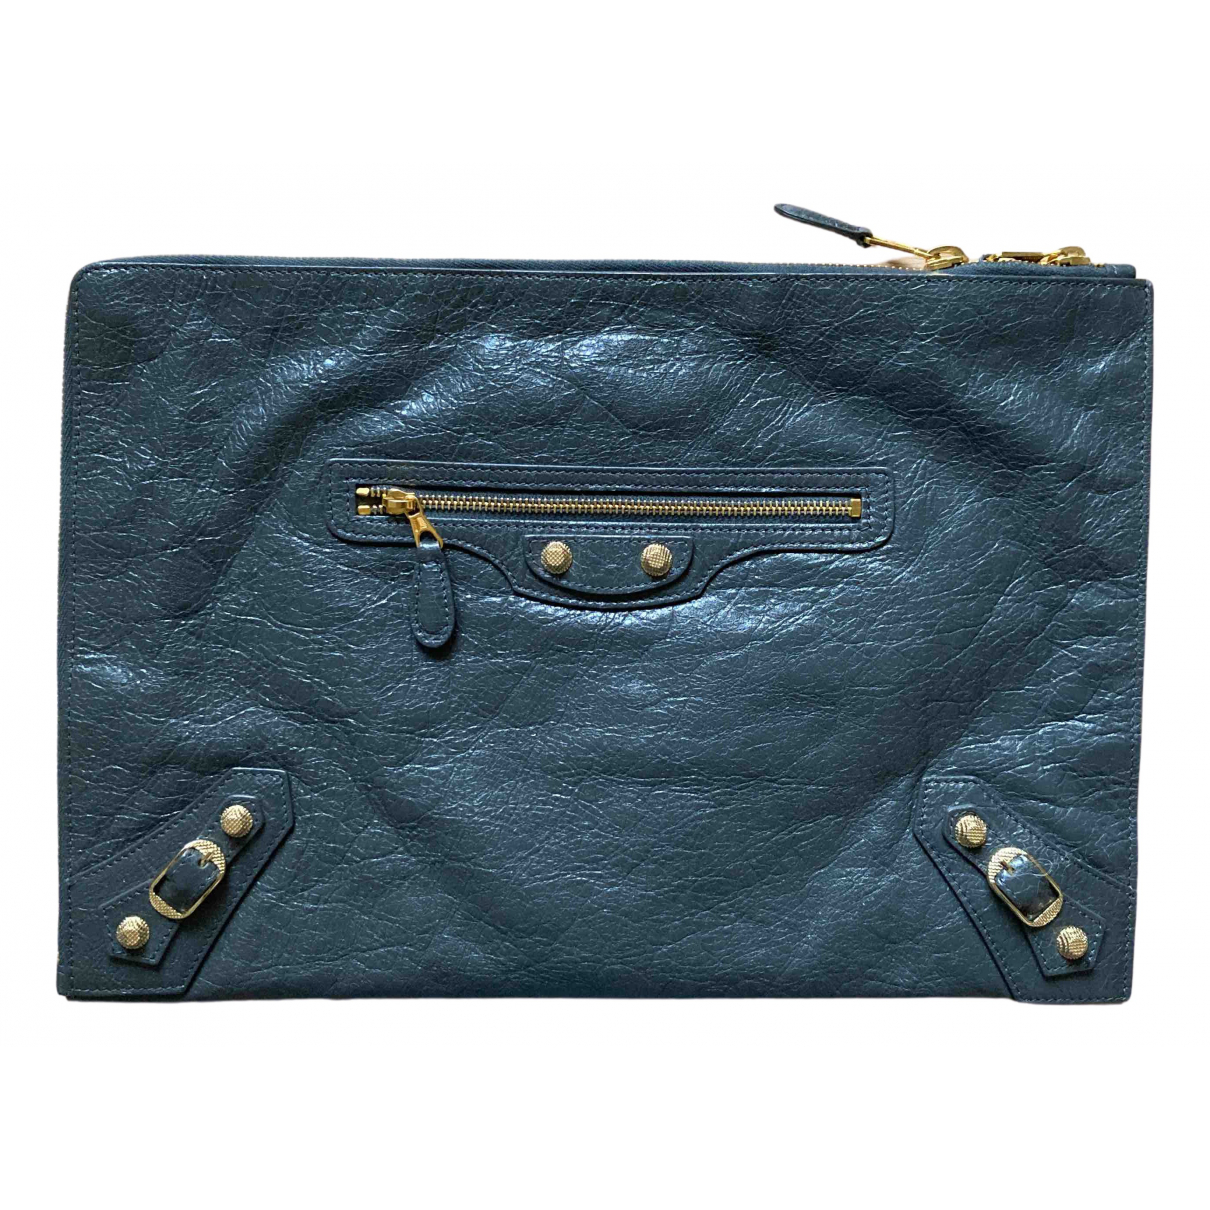 Balenciaga City Anthracite Leather Clutch bag for Women \N